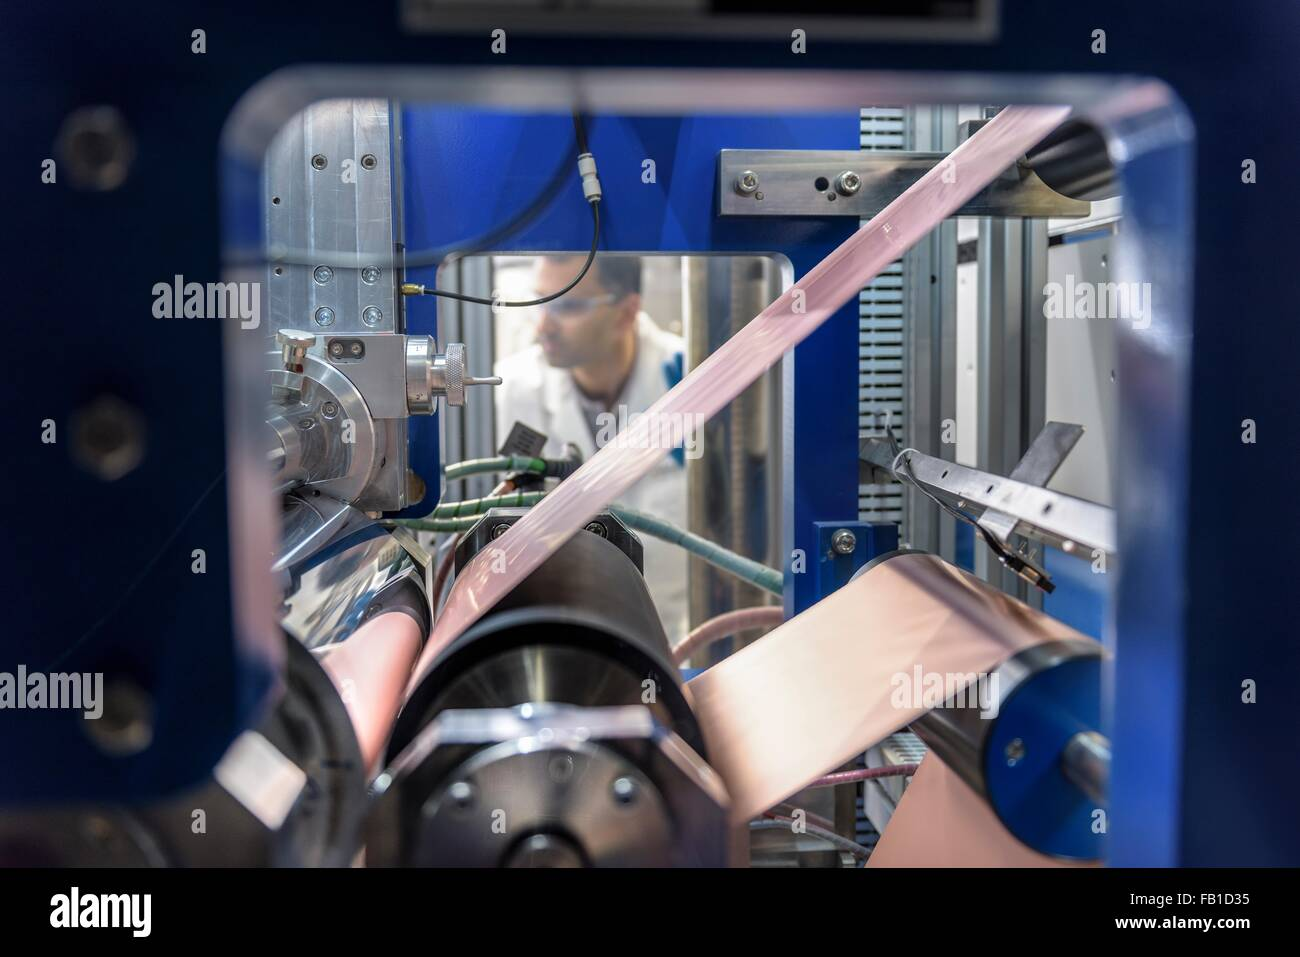 Manufacturing lithium ion batteries in battery research facility - Stock Image